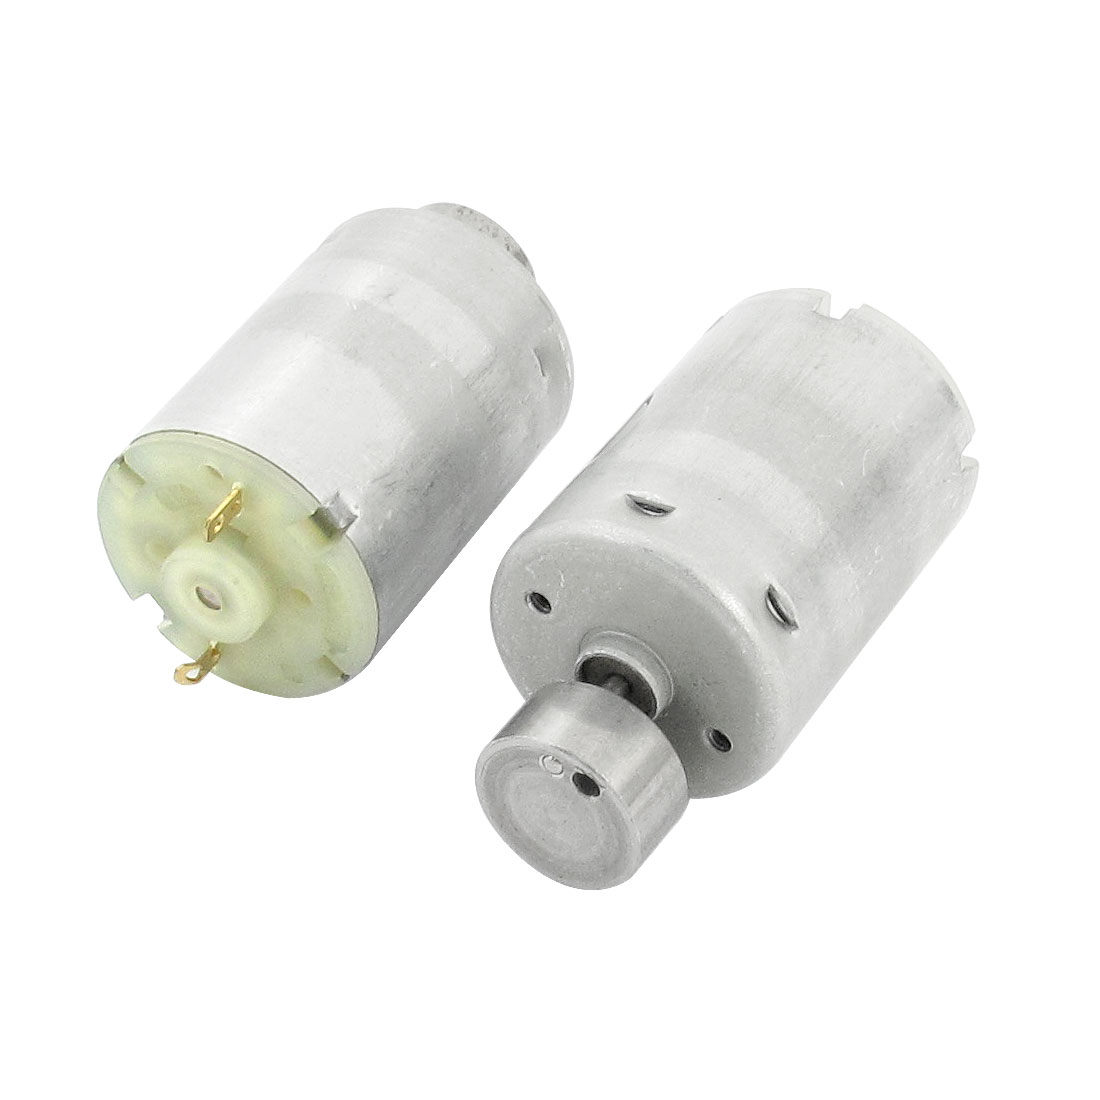 Magnetic-Vibrating-Vibration-Micro-Motor-35000RPM-6VDC-2-Pcs